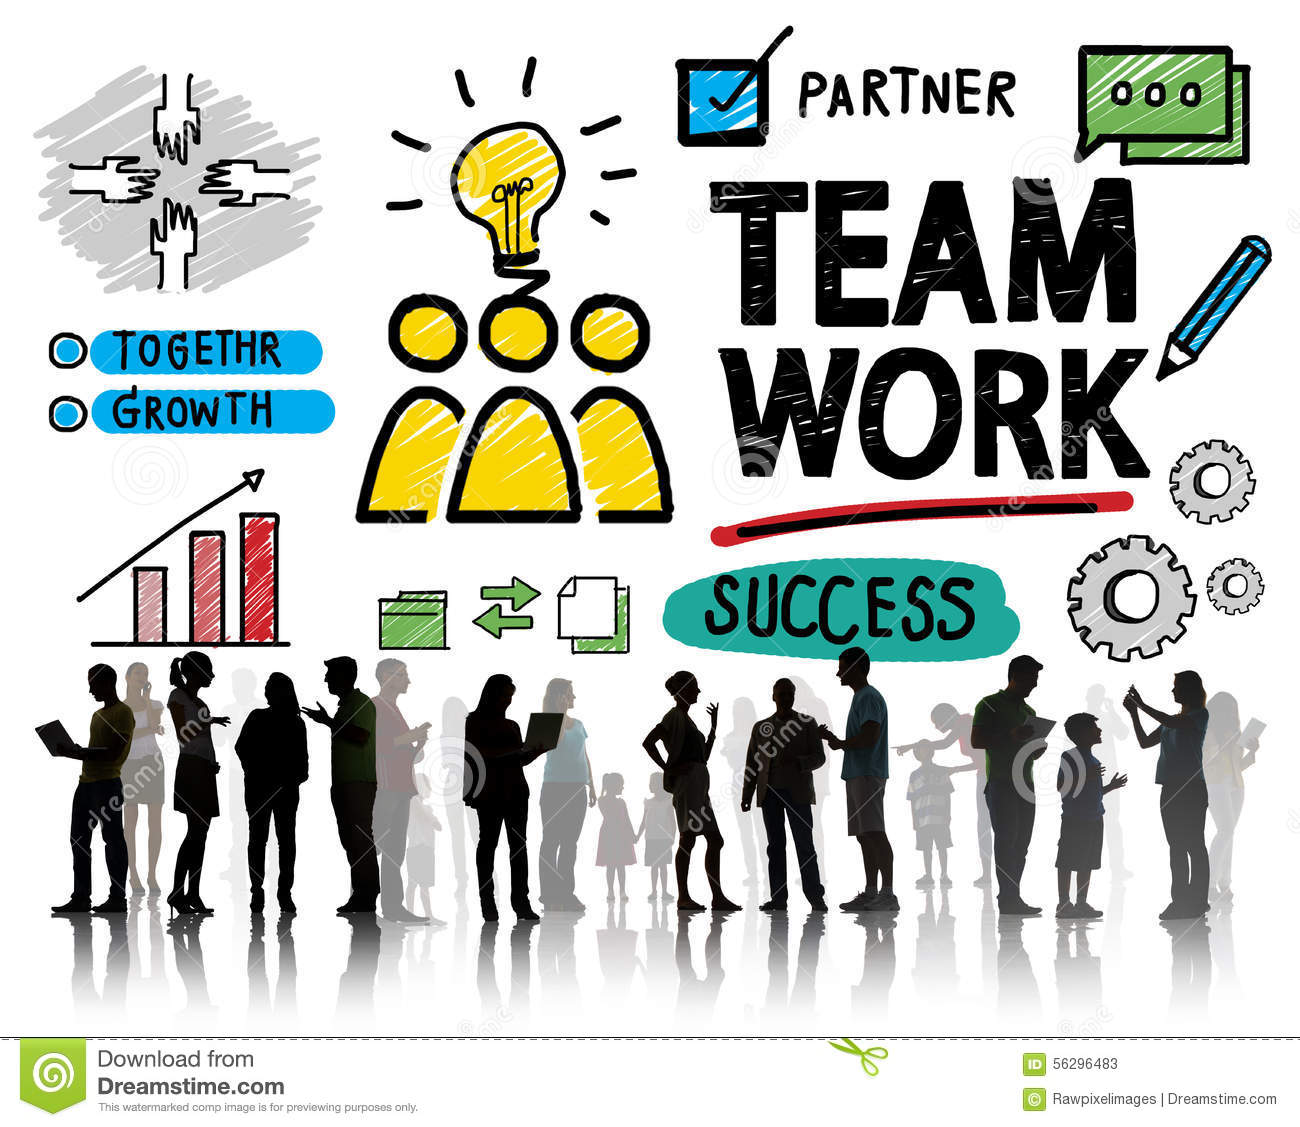 What Are the Benefits of Teamwork in Business?